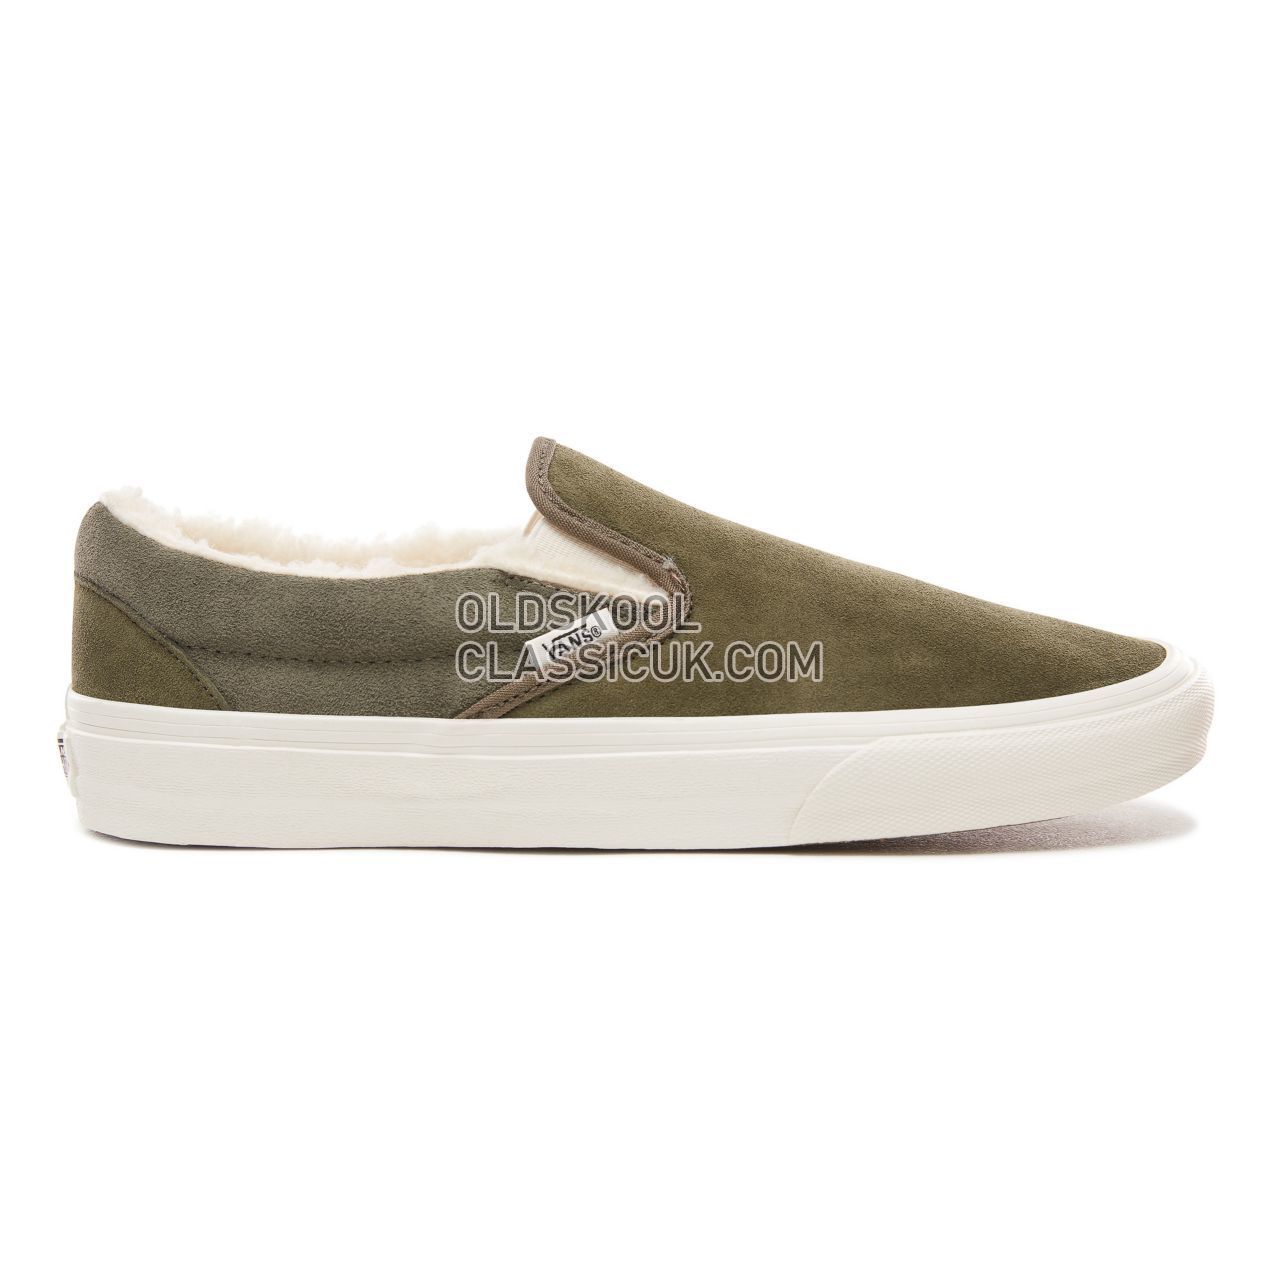 Vans Suede and Sherpa Classic Slip-On Sneakers Mens (Suede/Sherpa) Grape Leaf/Dusty Olive VN0A38F7ULZ Shoes